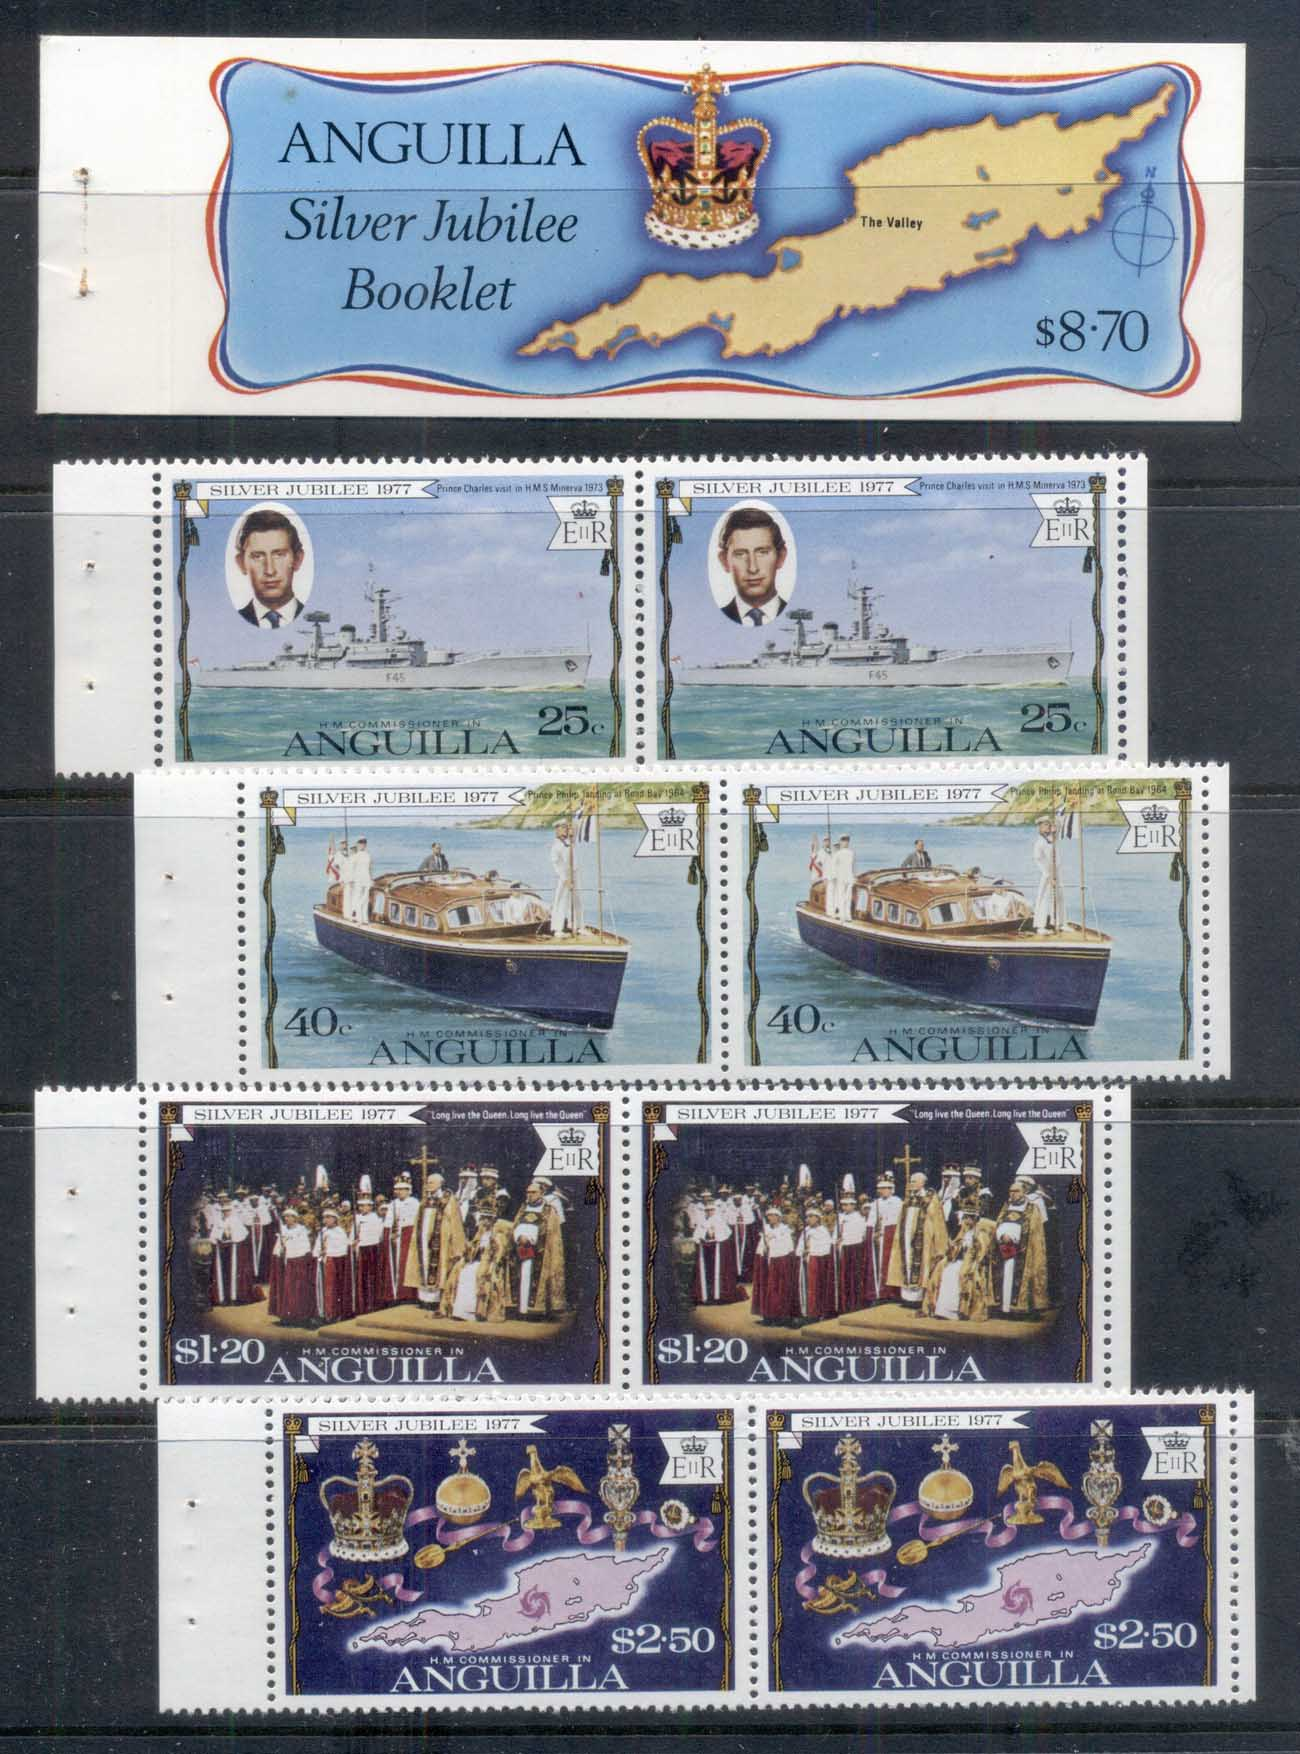 Anguilla 1977 QEII Silver Jubilee booklet exploded MUH